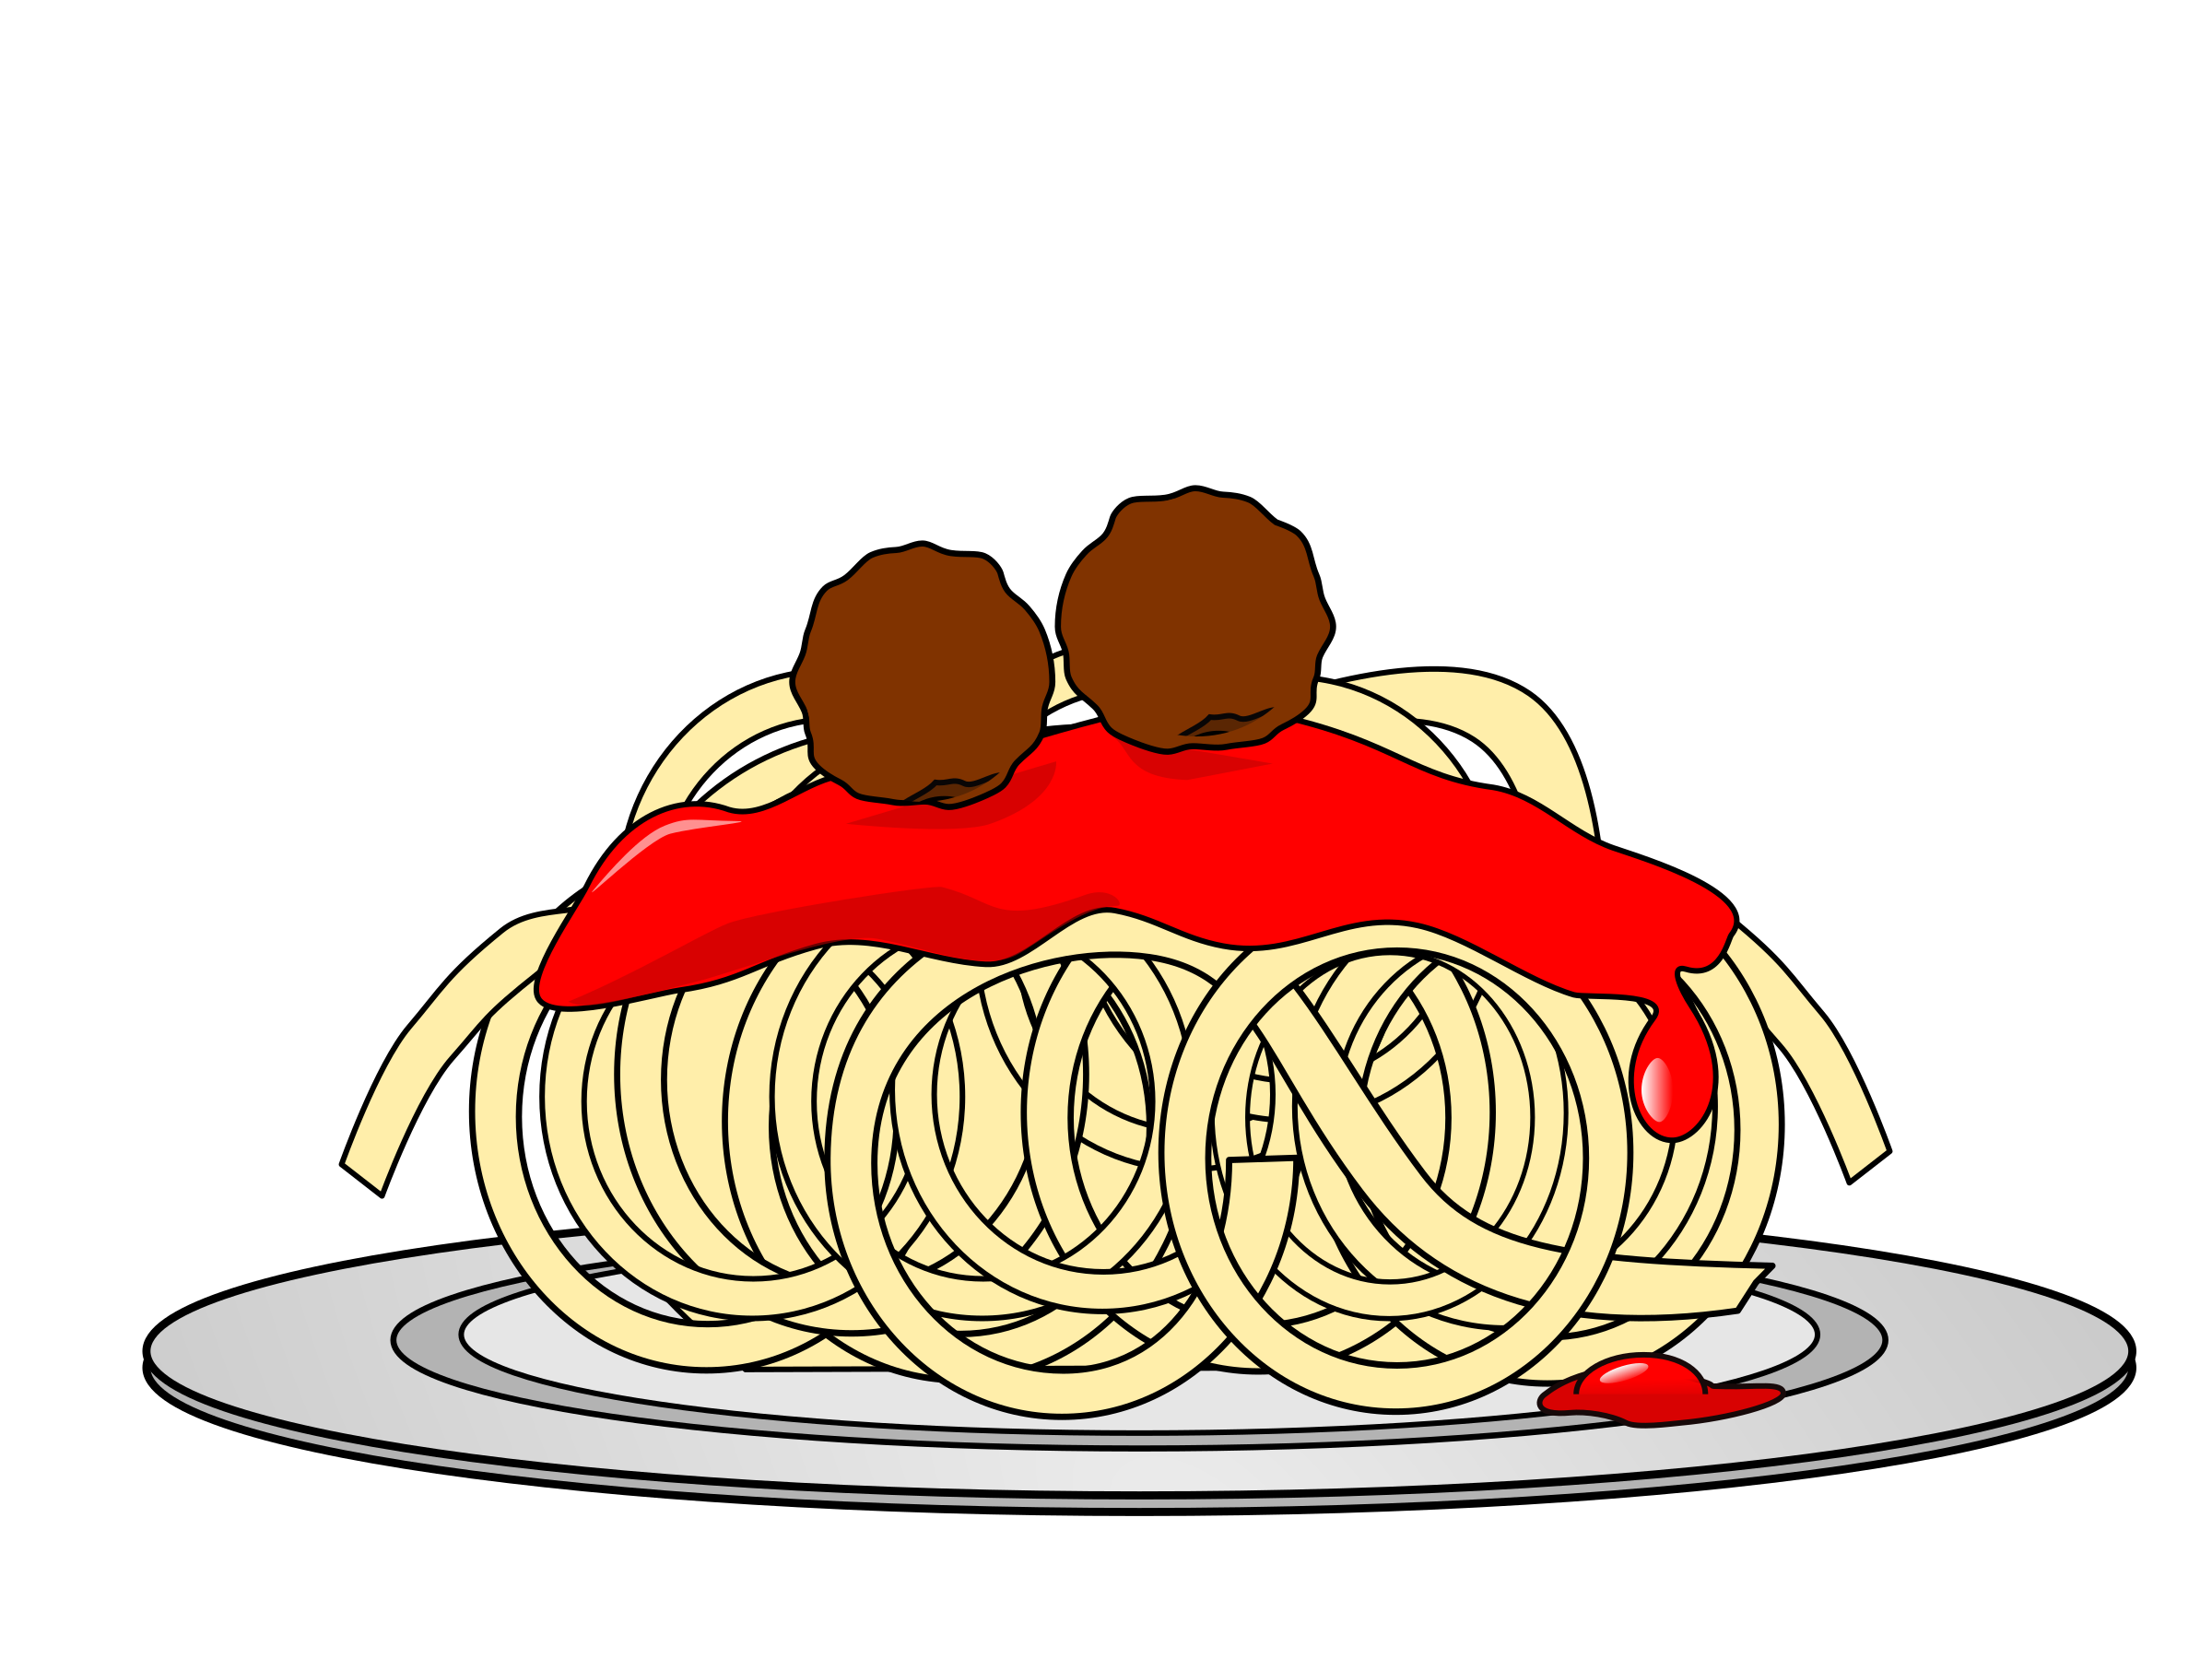 Spaghetti and meatballs monster. Desserts clipart animation